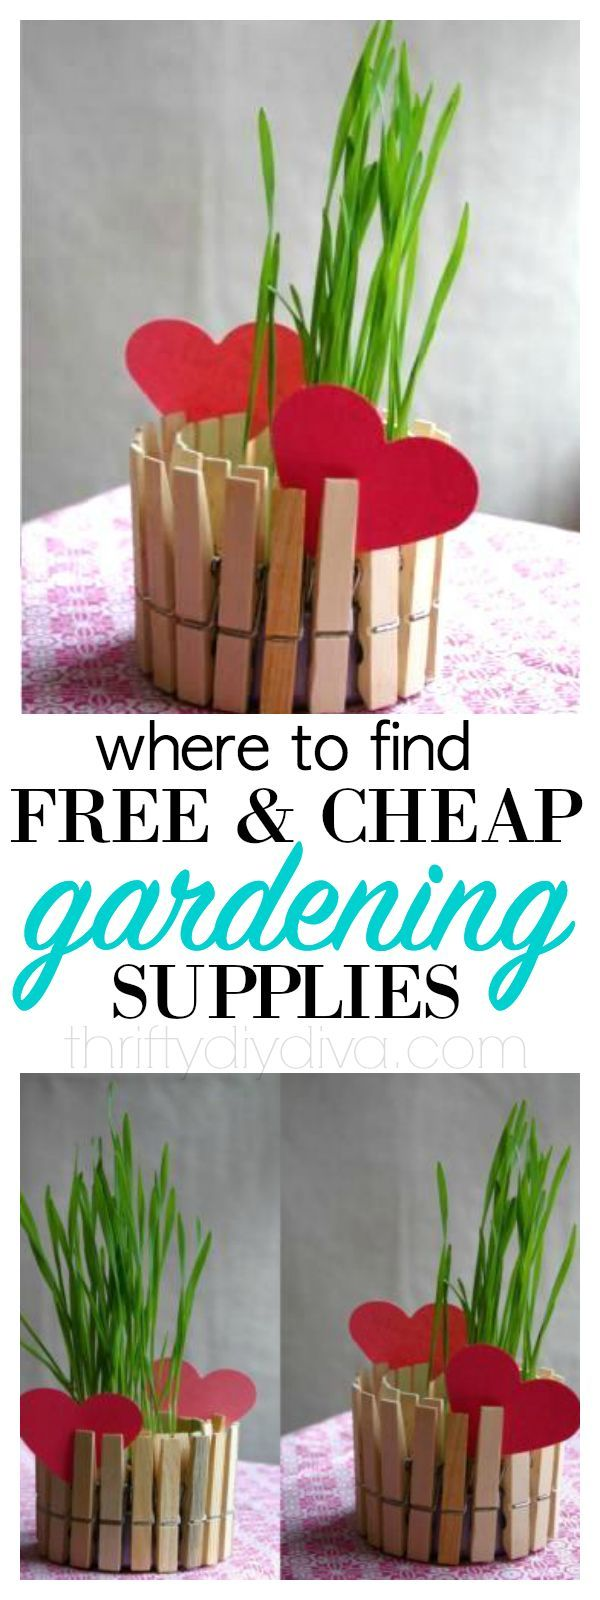 5 Free and Cheap Gardening Supplies Gardens Tips and Budget